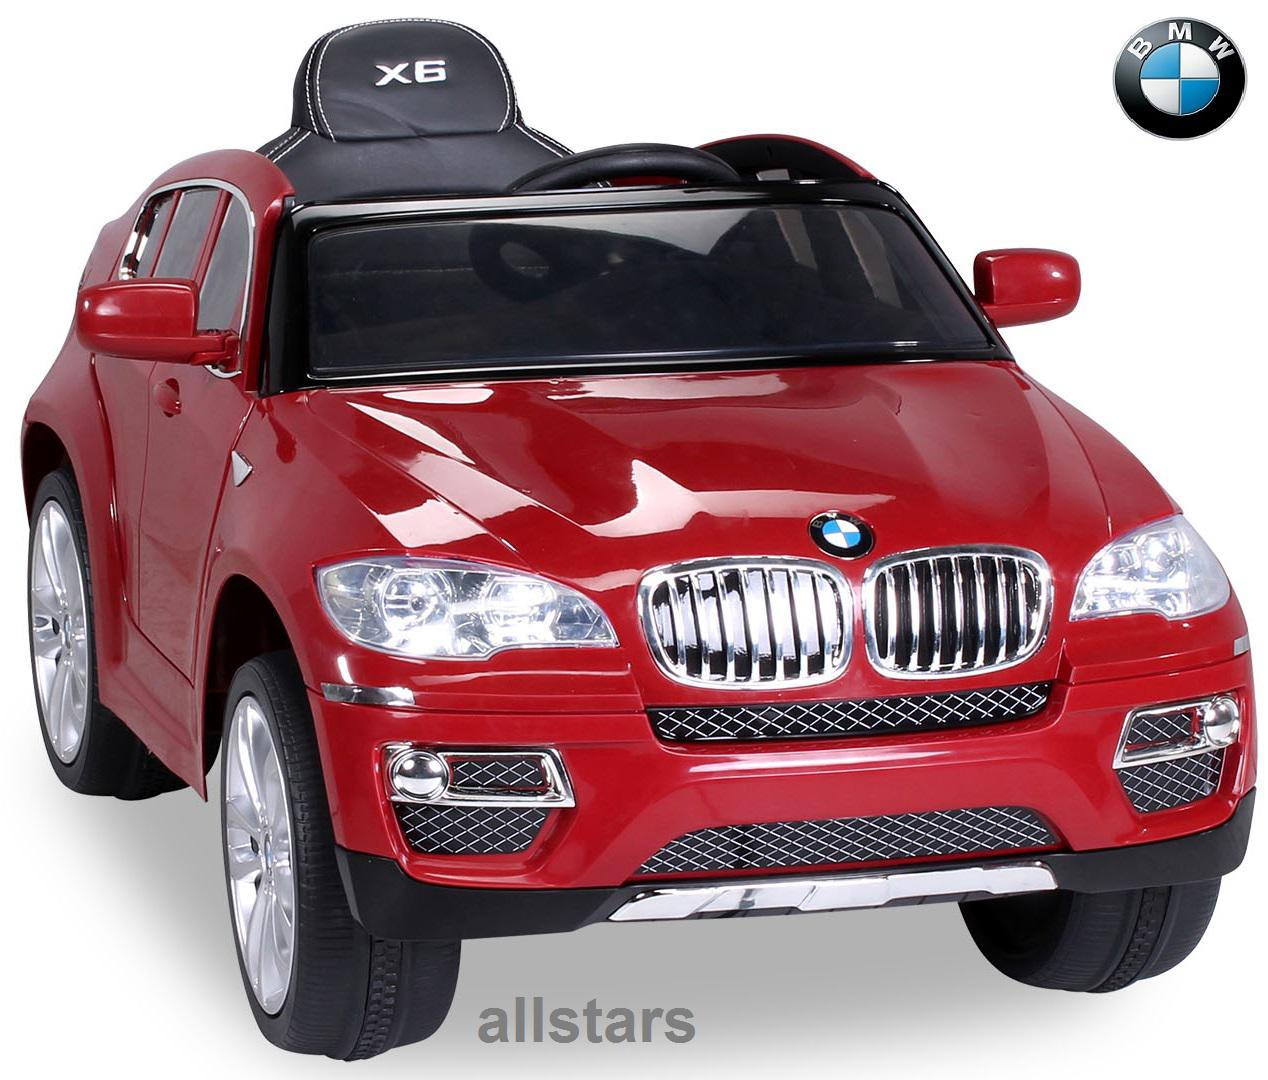 elektro kinderauto bmw x6 lizenziert e auto 90 w. Black Bedroom Furniture Sets. Home Design Ideas